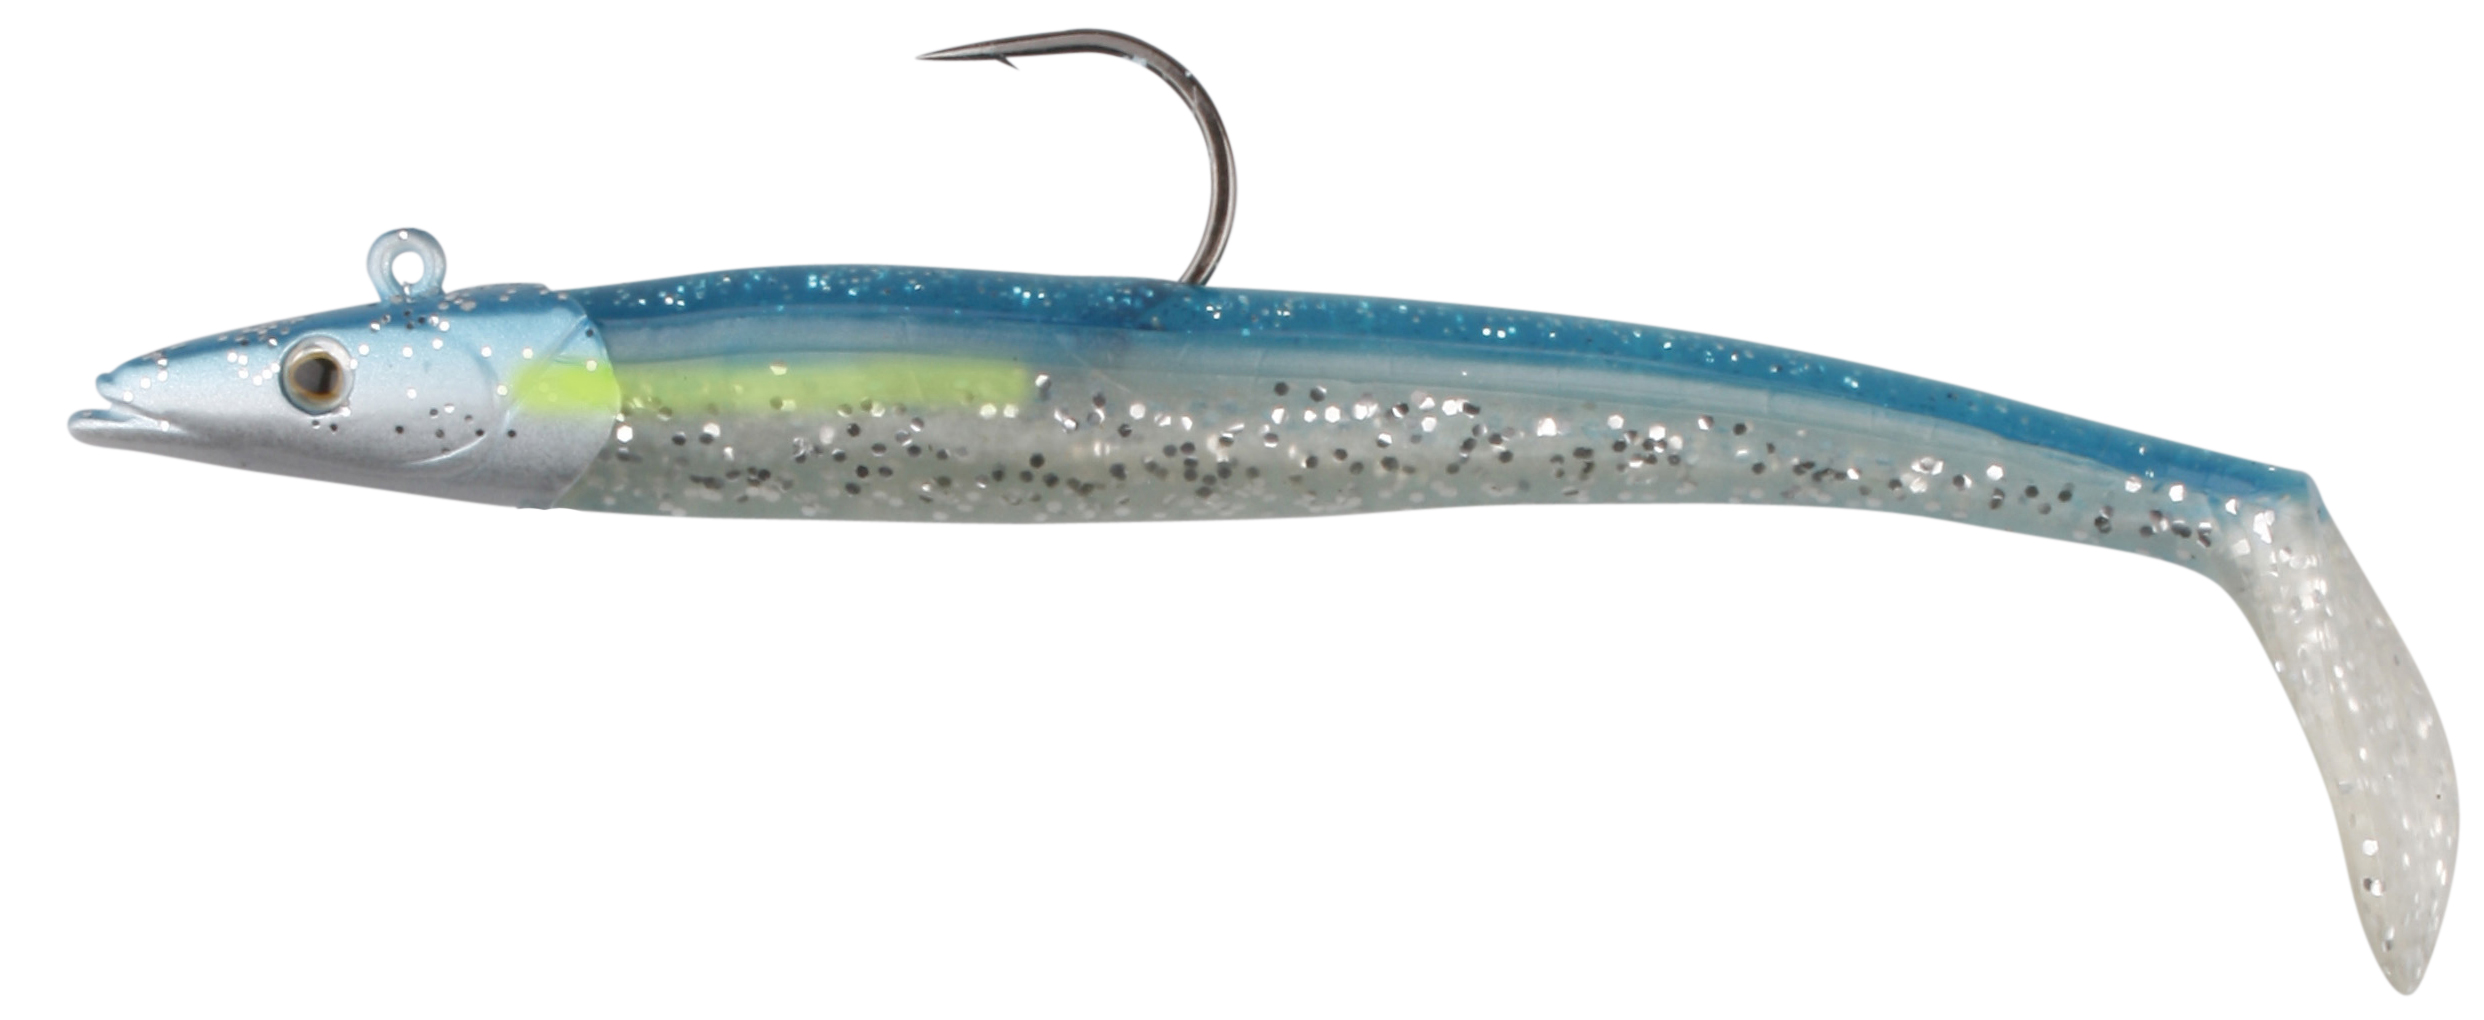 Savage gear saltwater sandeel lures glasgow angling centre for Ocean fishing gear